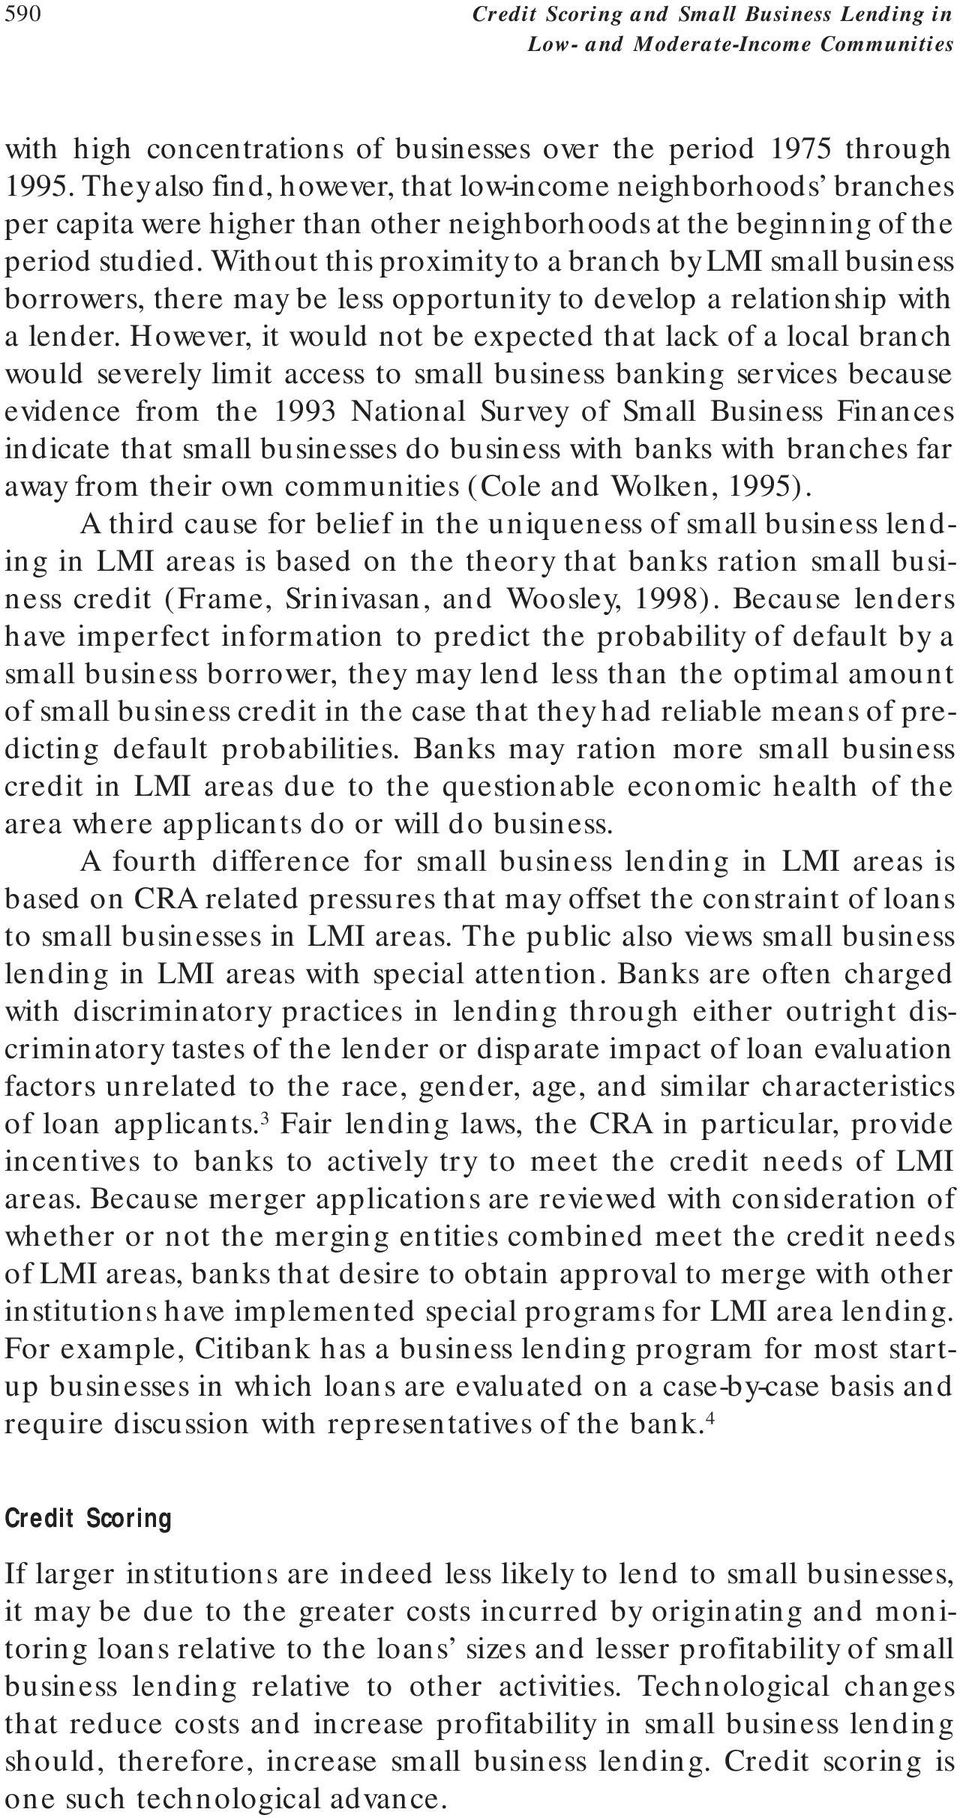 Without this proximity to a branch by LMI small business borrowers, there may be less opportunity to develop a relationship with a lender.